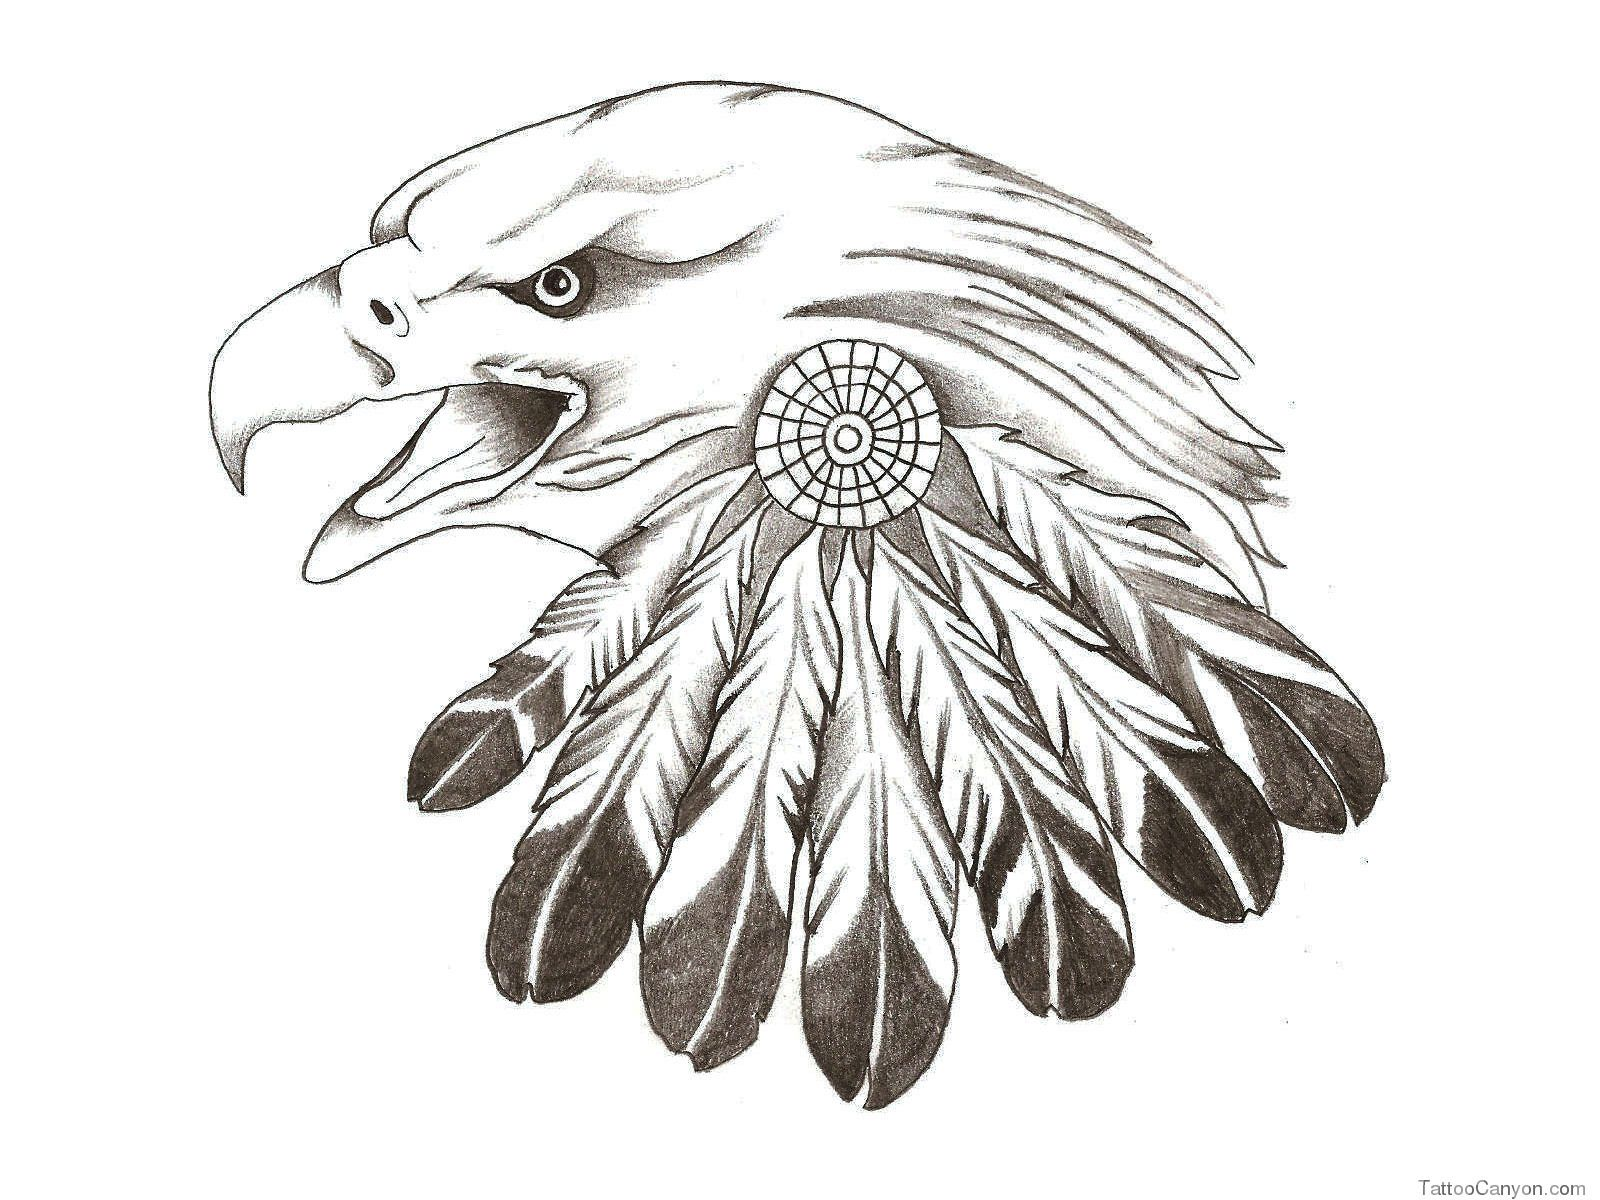 American eagle tattoos high quality photos and flash - Native American Celebrity On Native American Warrior Band And Eagle Feathers Tattoo Native American